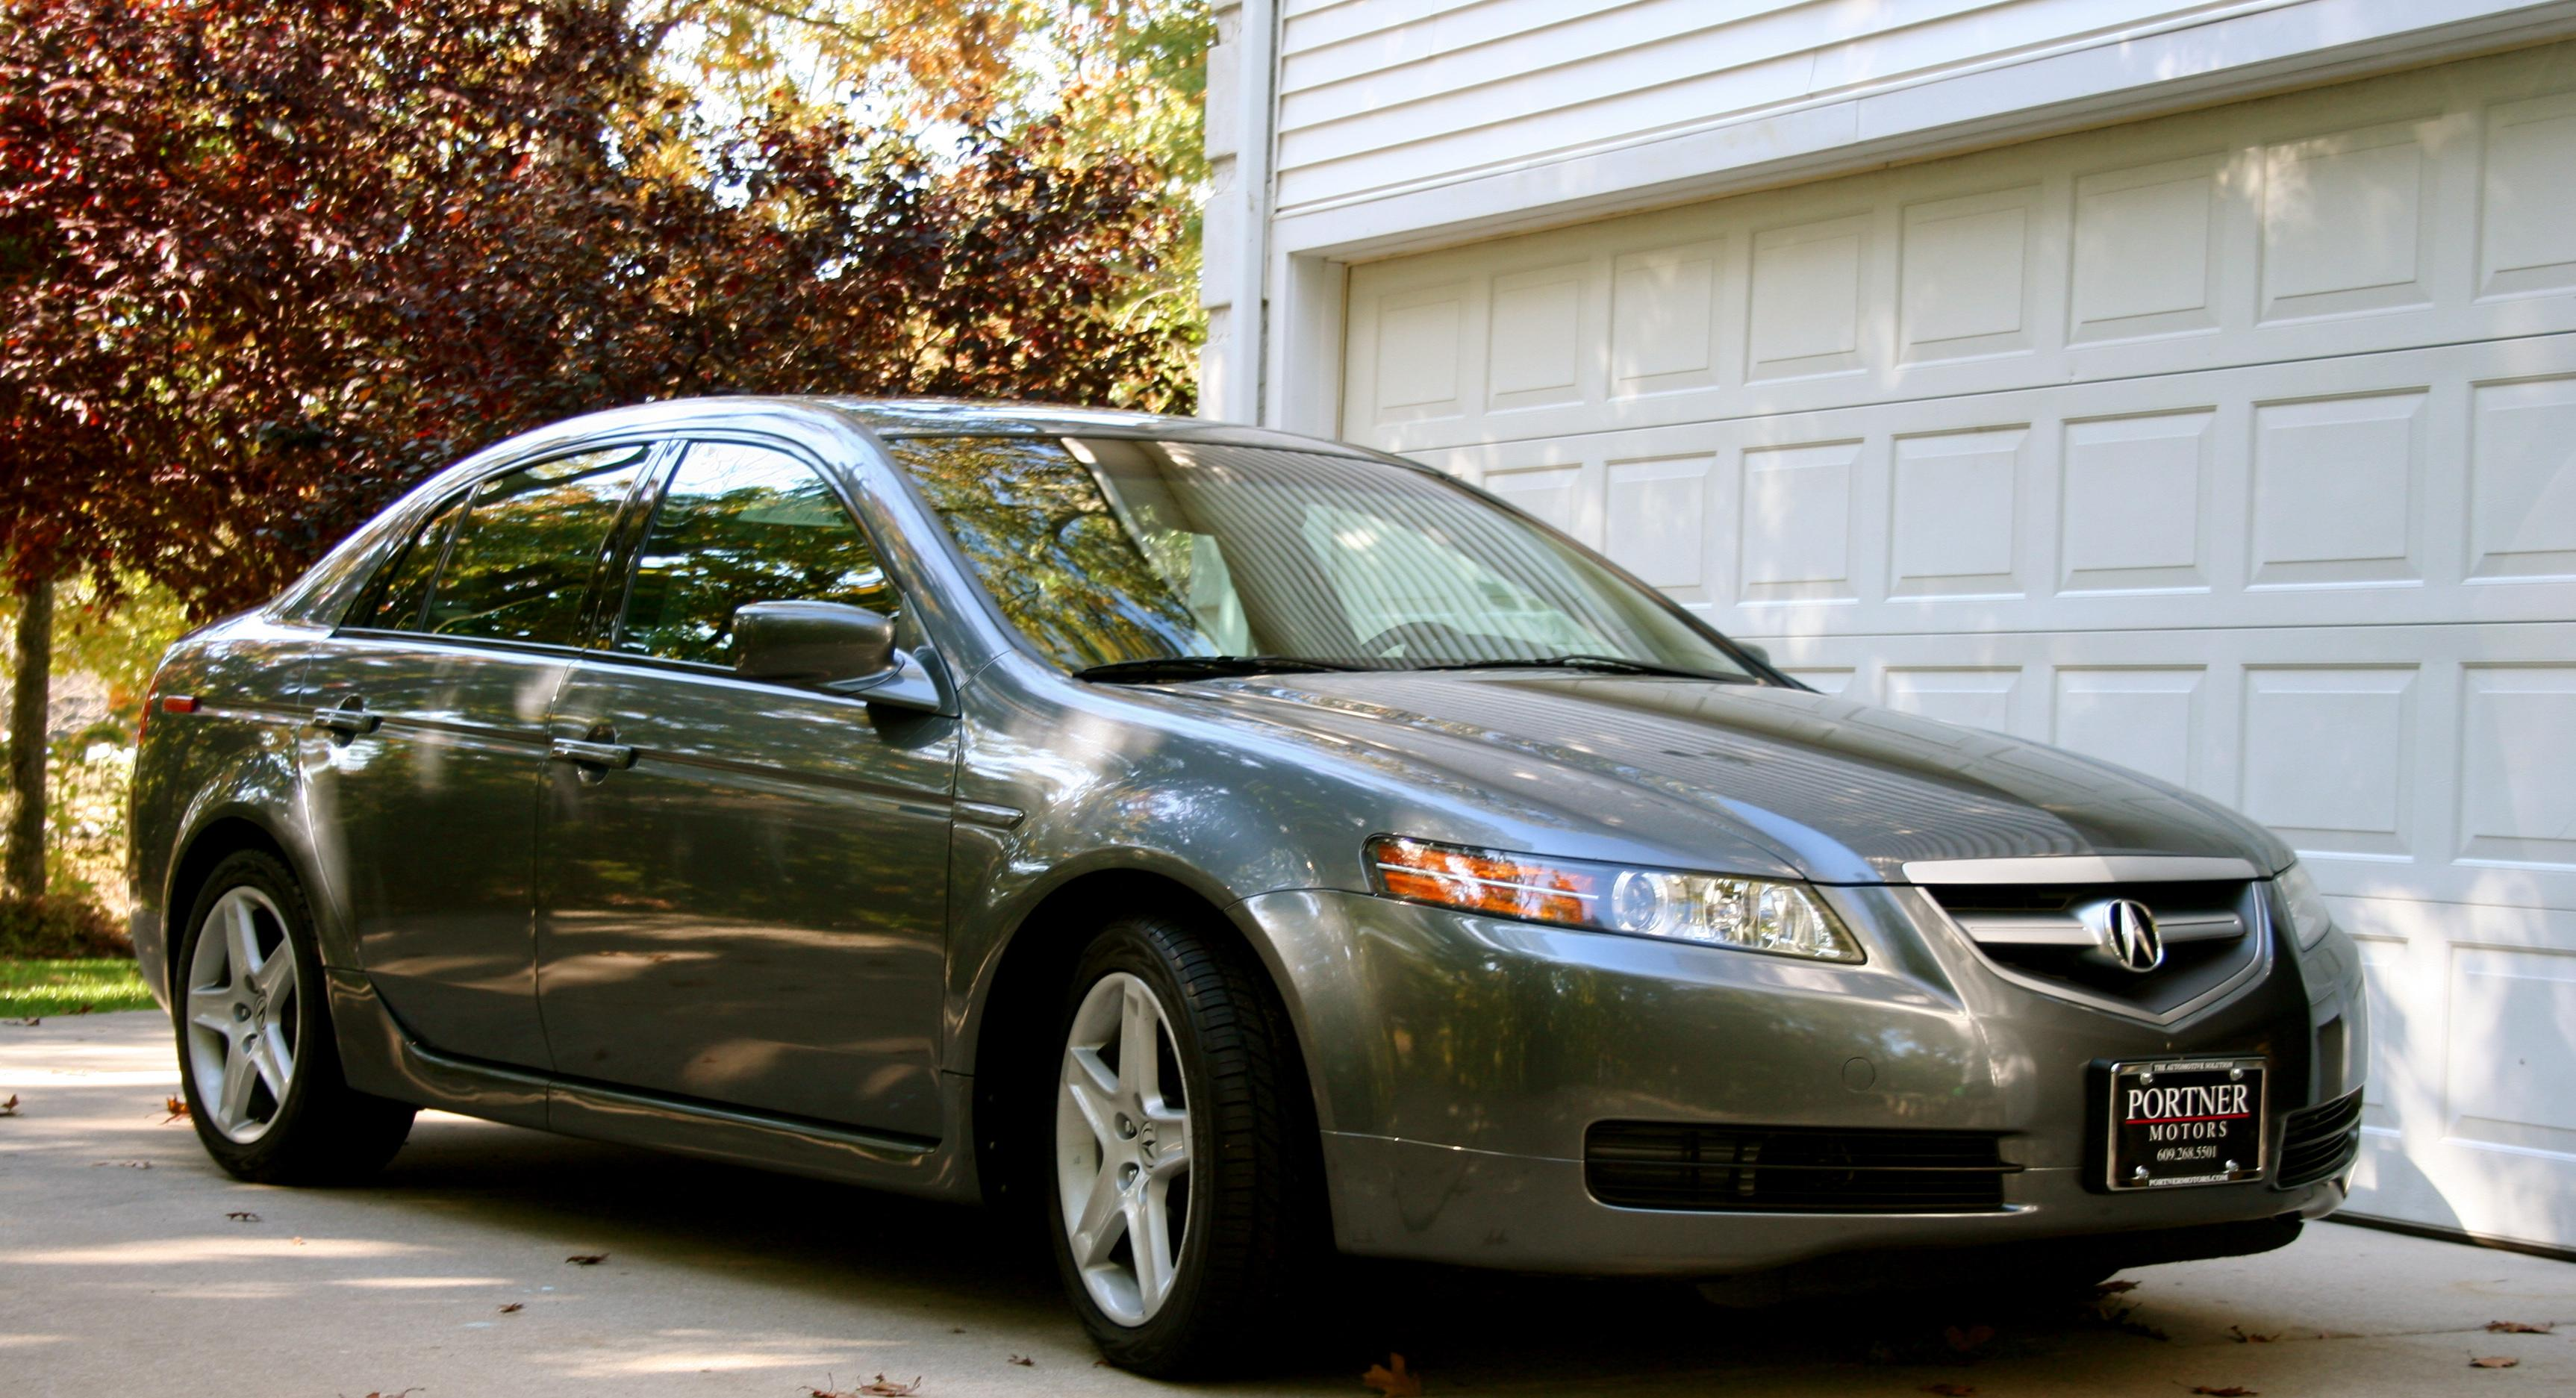 accord9400 39 s 2005 acura tl in mt laurel nj. Black Bedroom Furniture Sets. Home Design Ideas